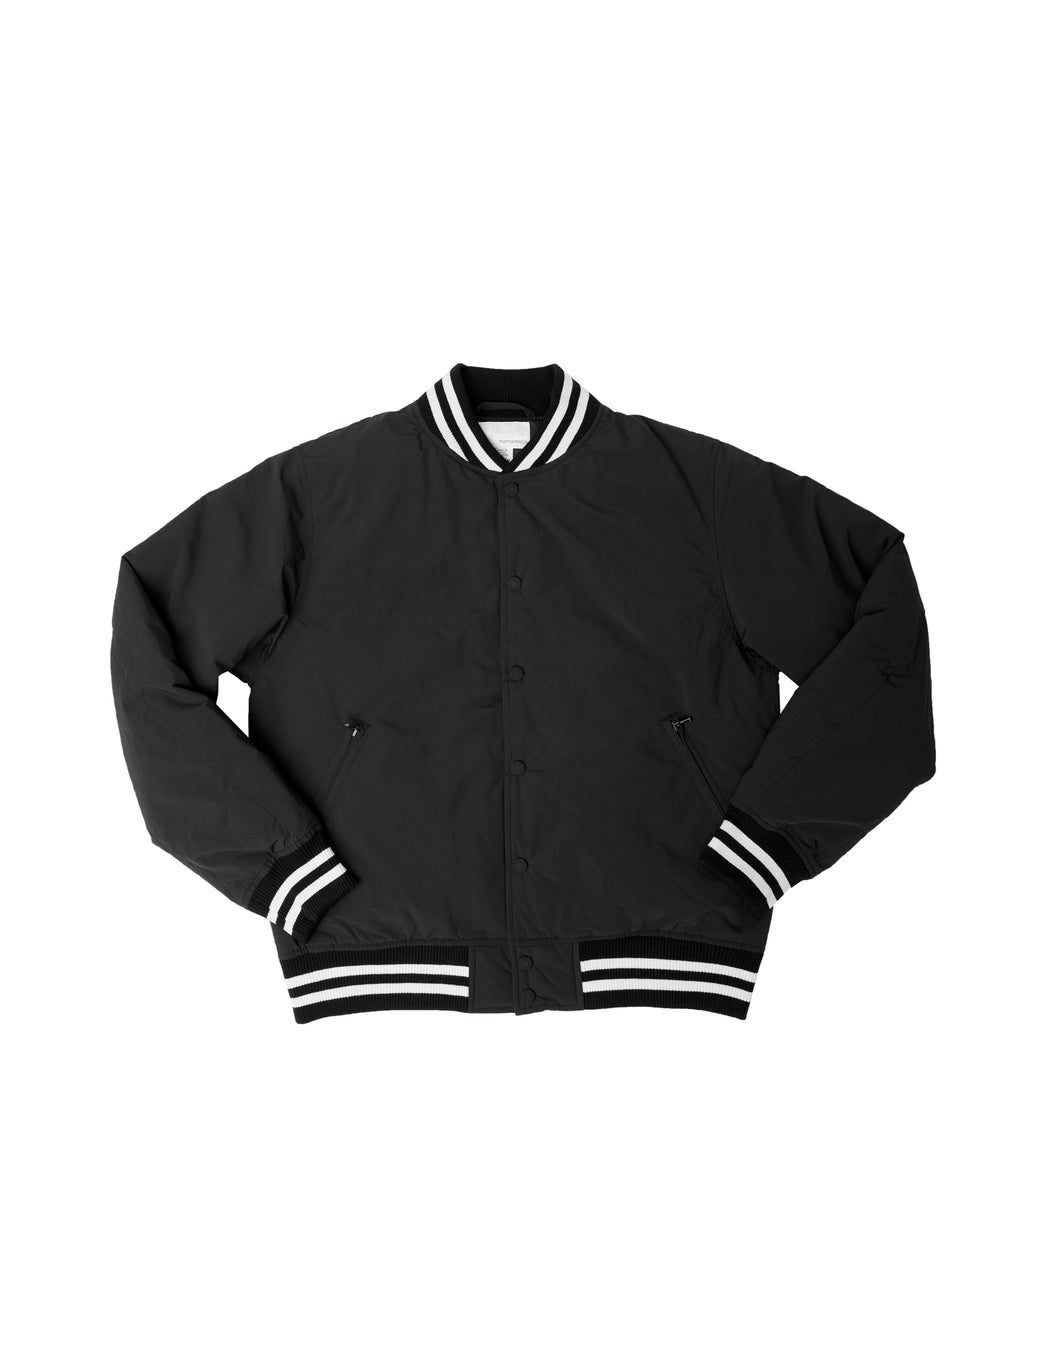 Down Varsity Jacket in Black